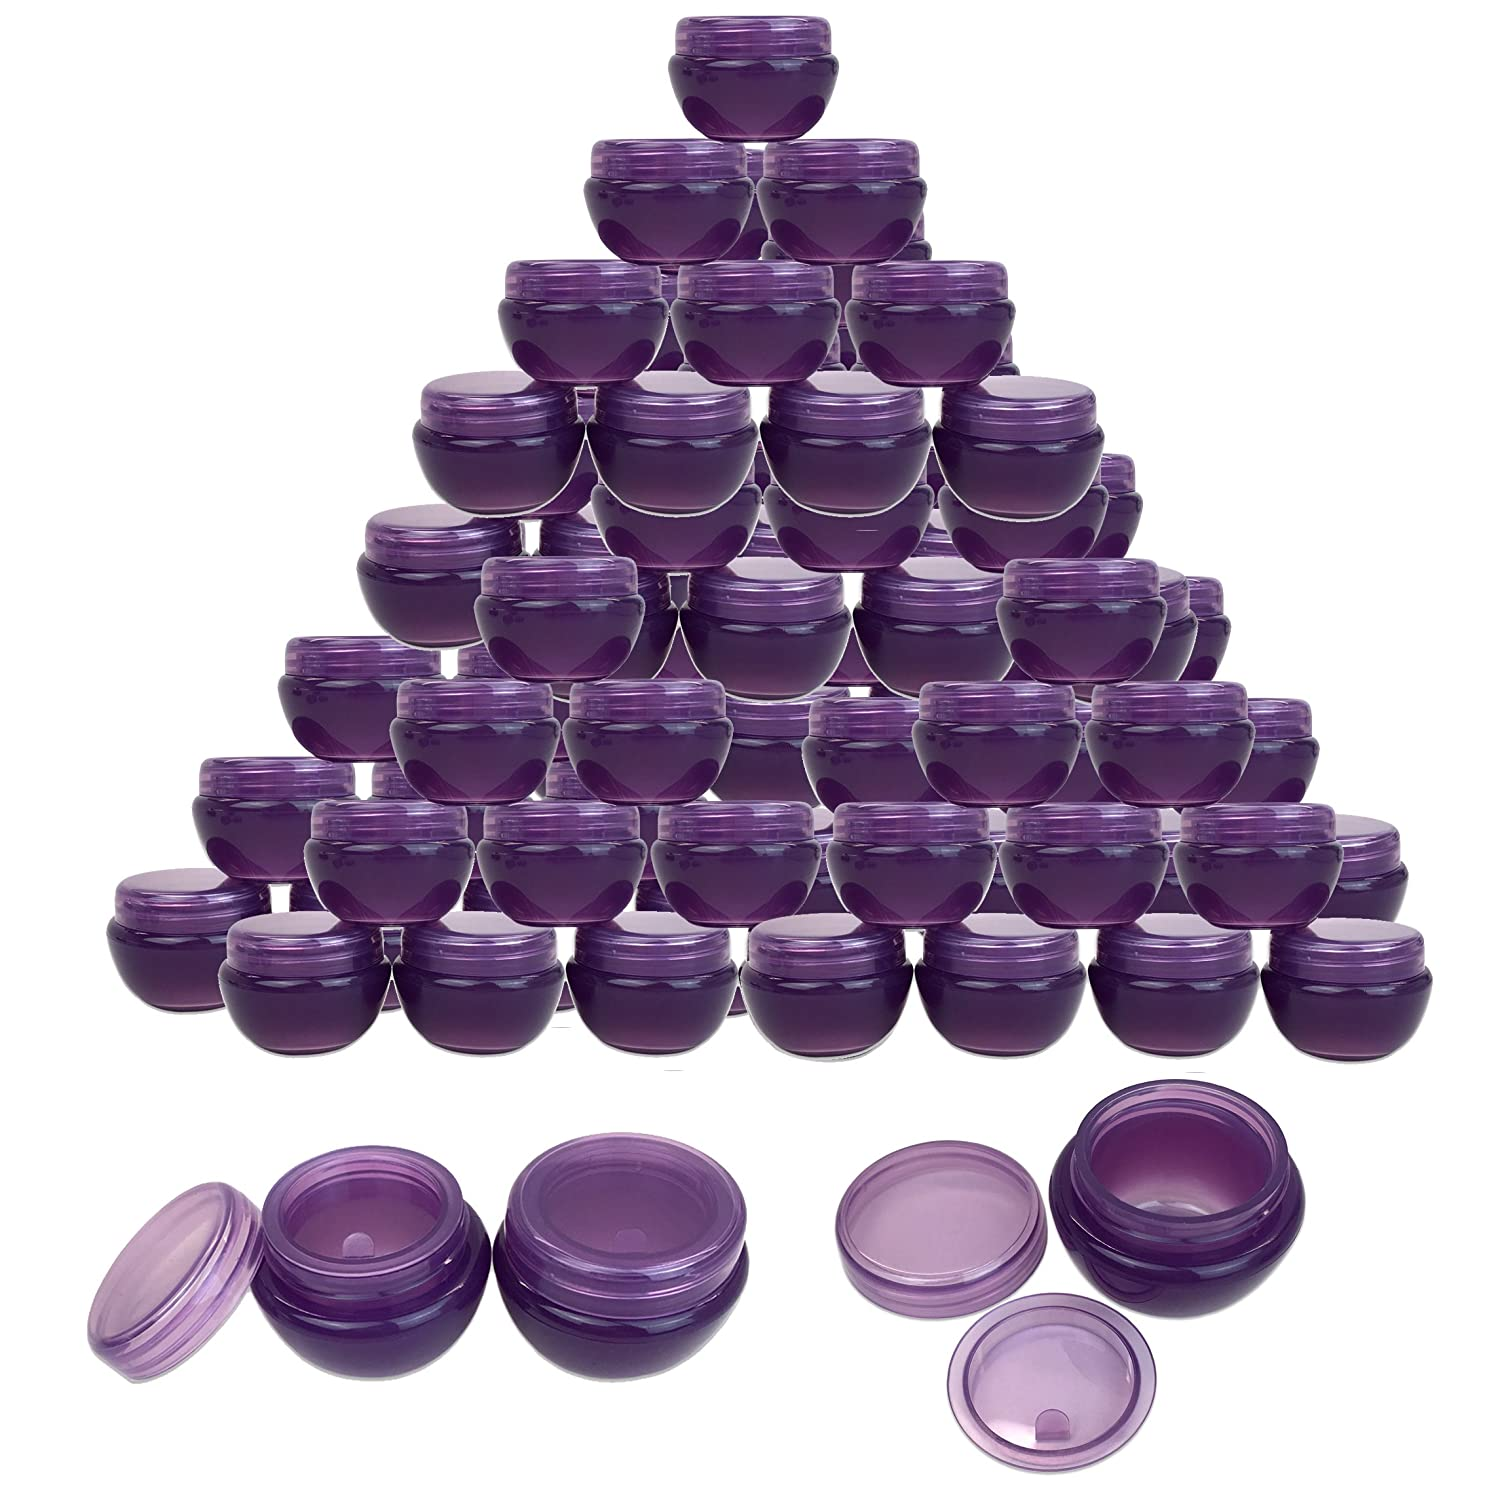 Beauticom 48 Pieces 10G 10ML Purple Frosted Container Jars with Inner Liner for Homemade Moisturizers, Lotions, Skin Care Products – BPA Free